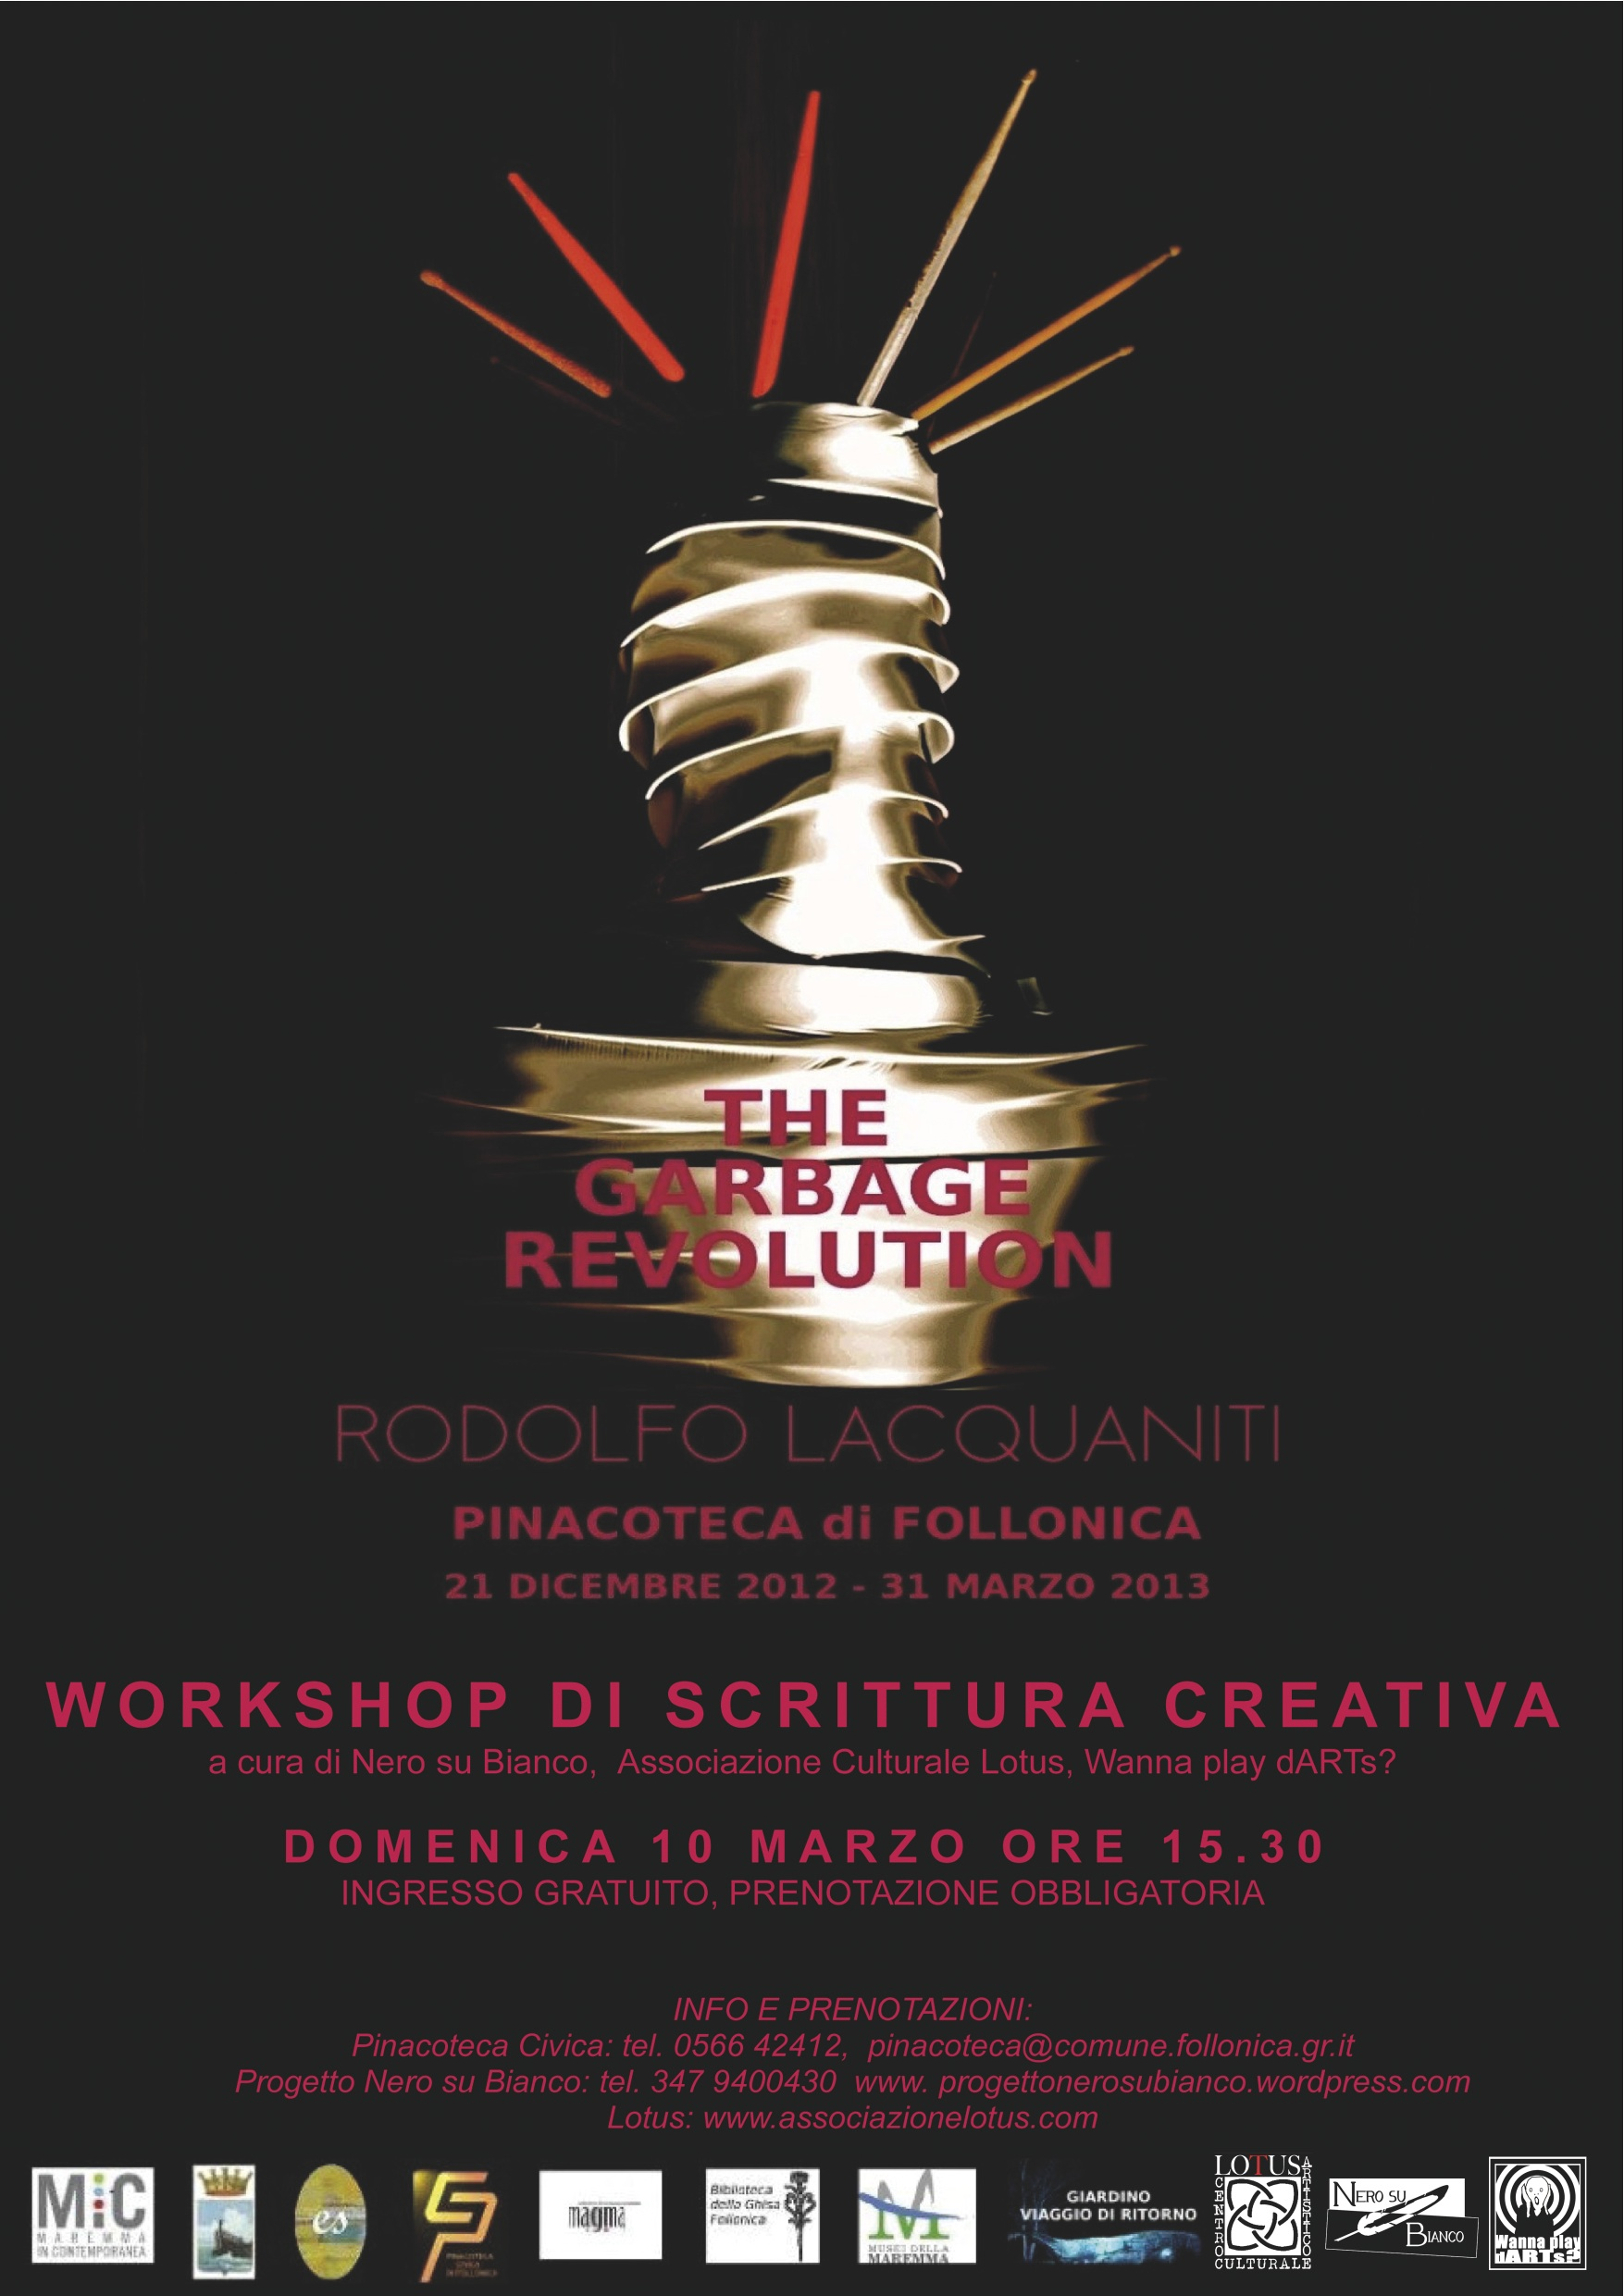 WORKSHOP DI SCRITTURA CREATIVA TEH GARBAGE REVOLUTION